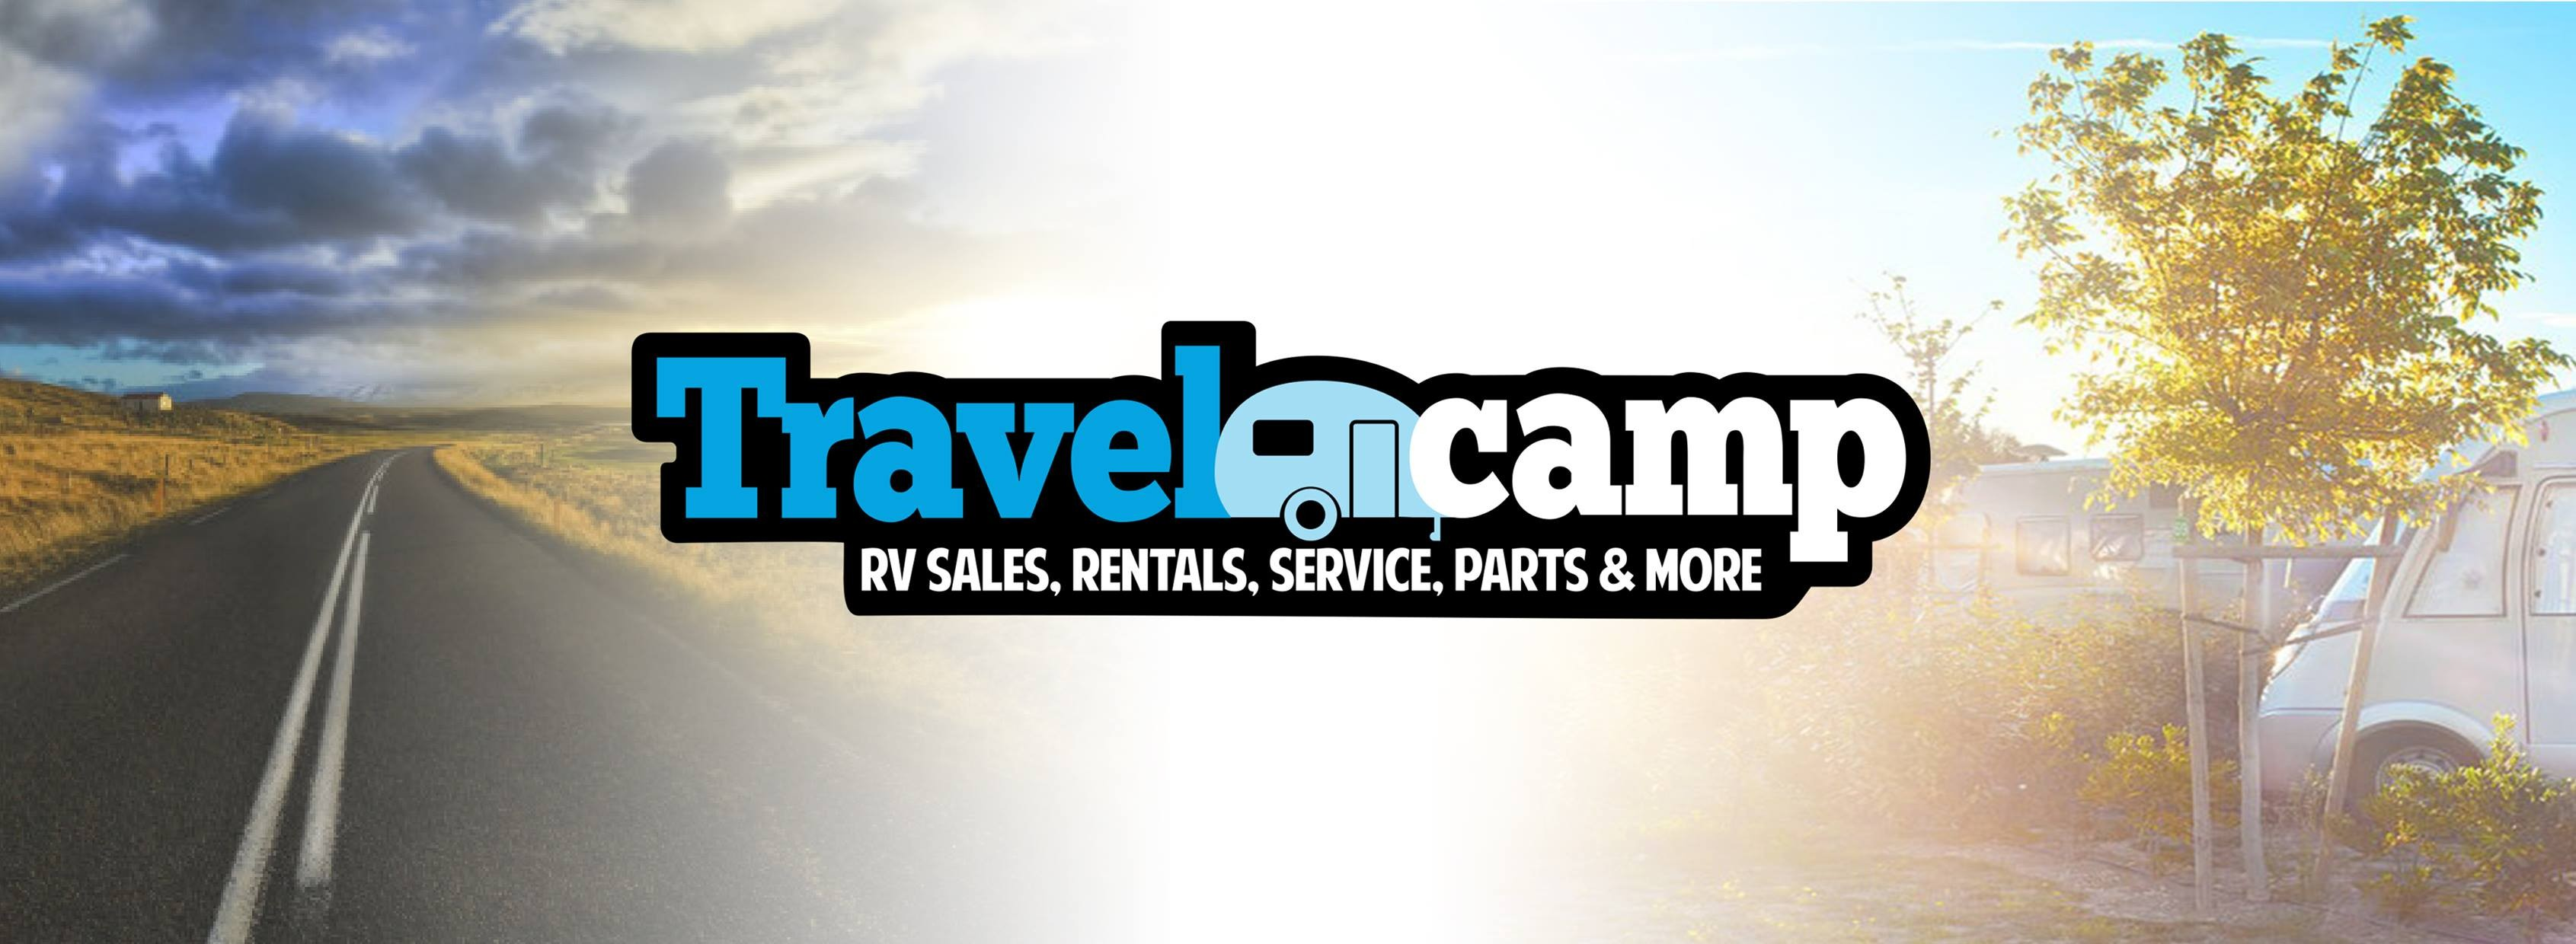 Travelcamp RV | LinkedIn